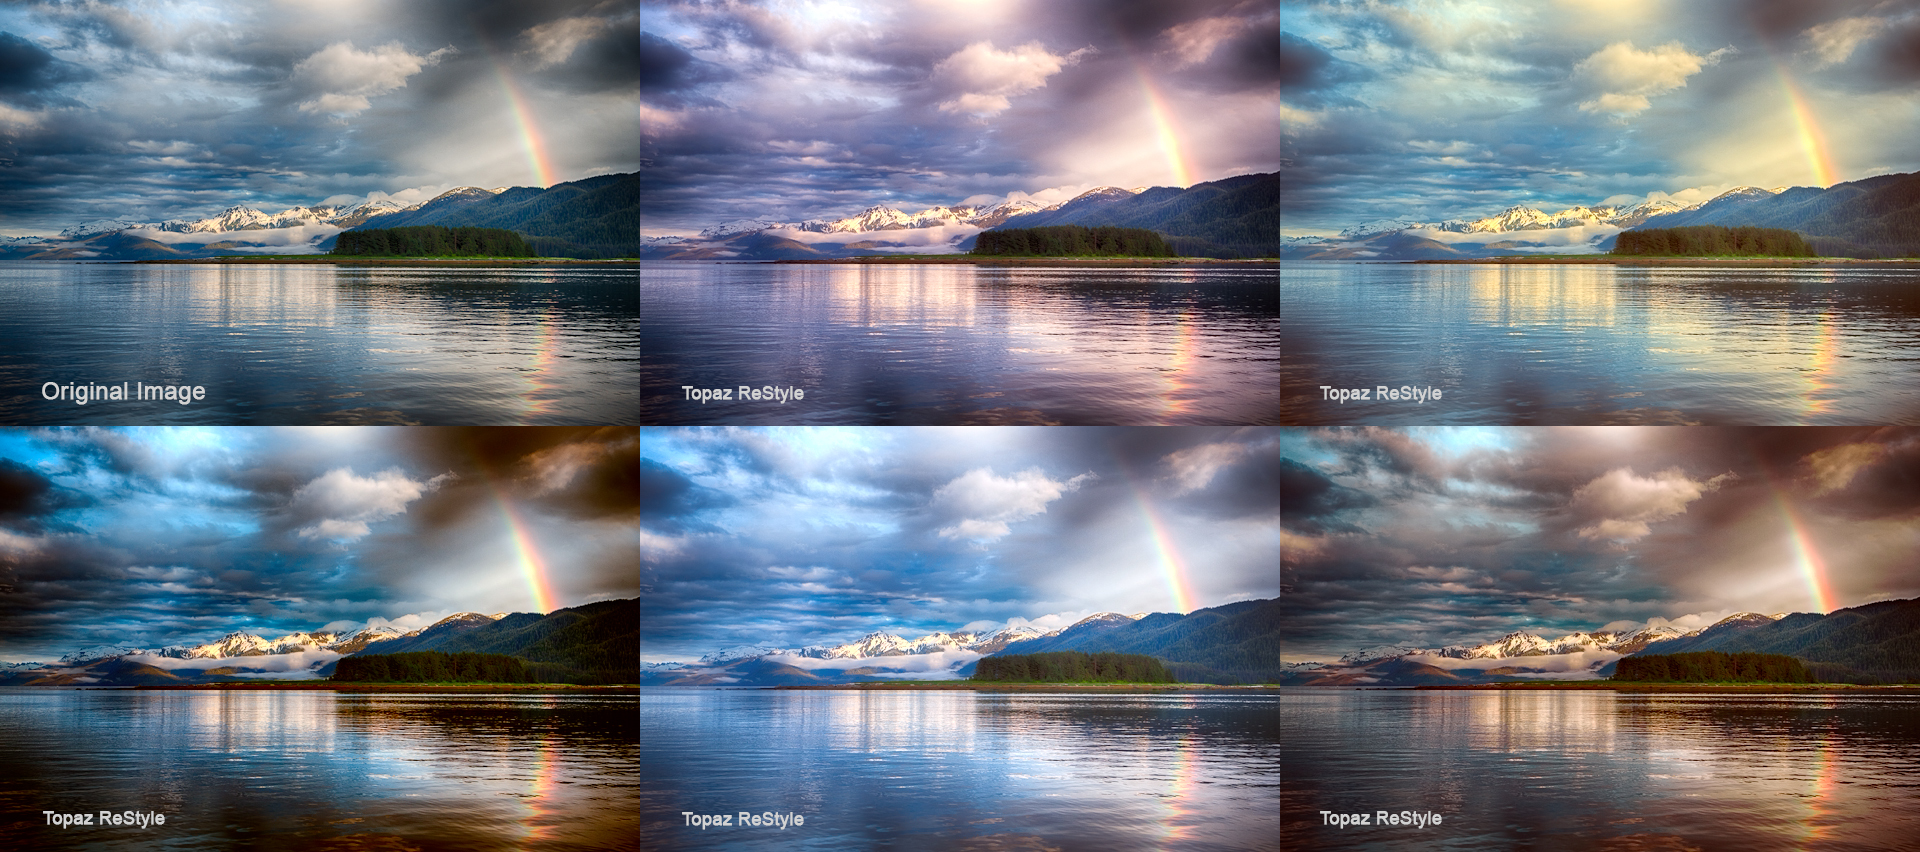 Topaz Restyle generated variants of an Alaskan sunset rainbow.